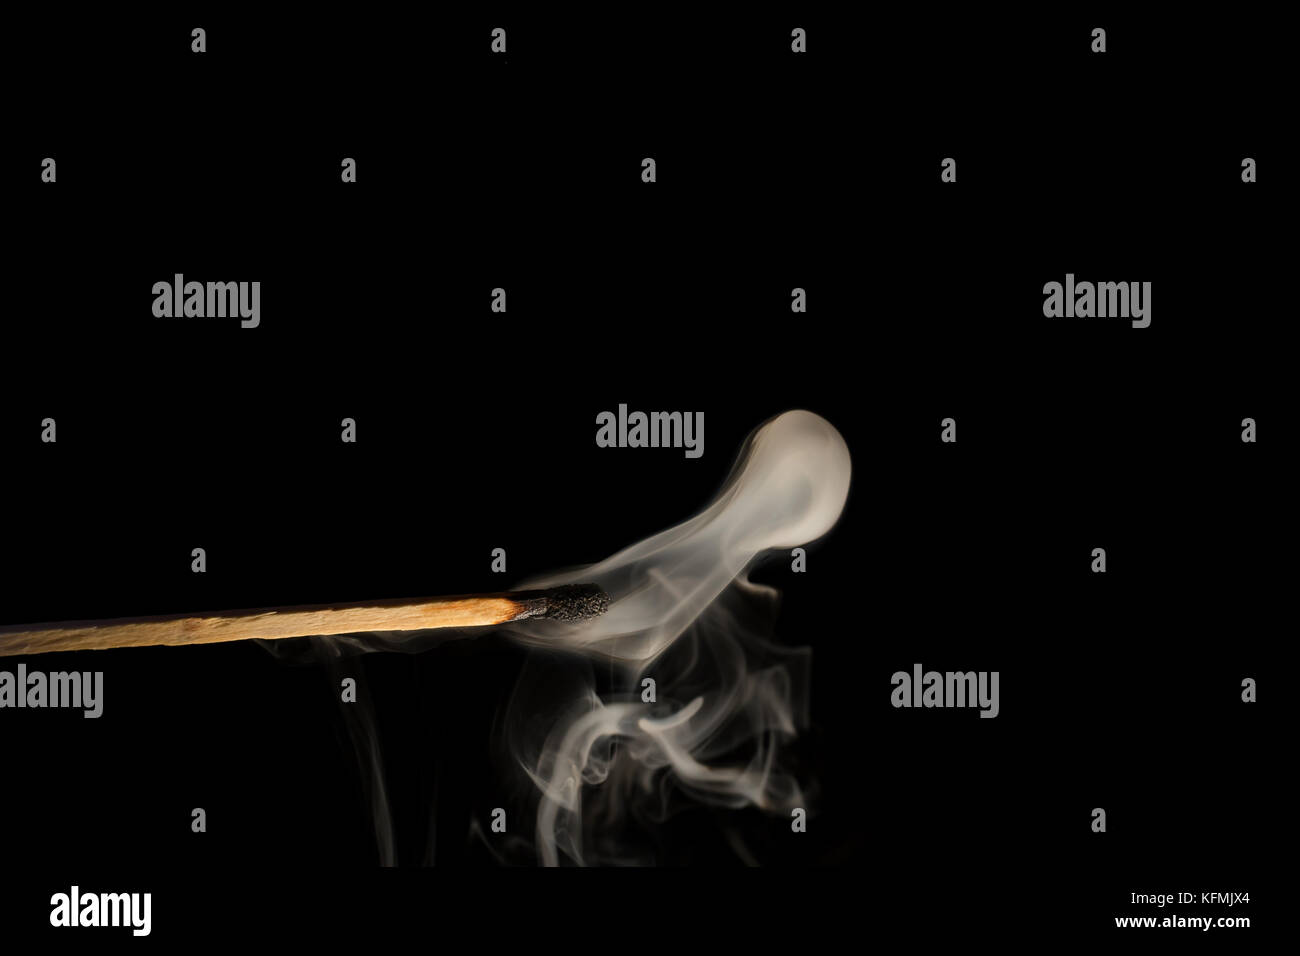 Match photographed close up with black background. - Stock Image